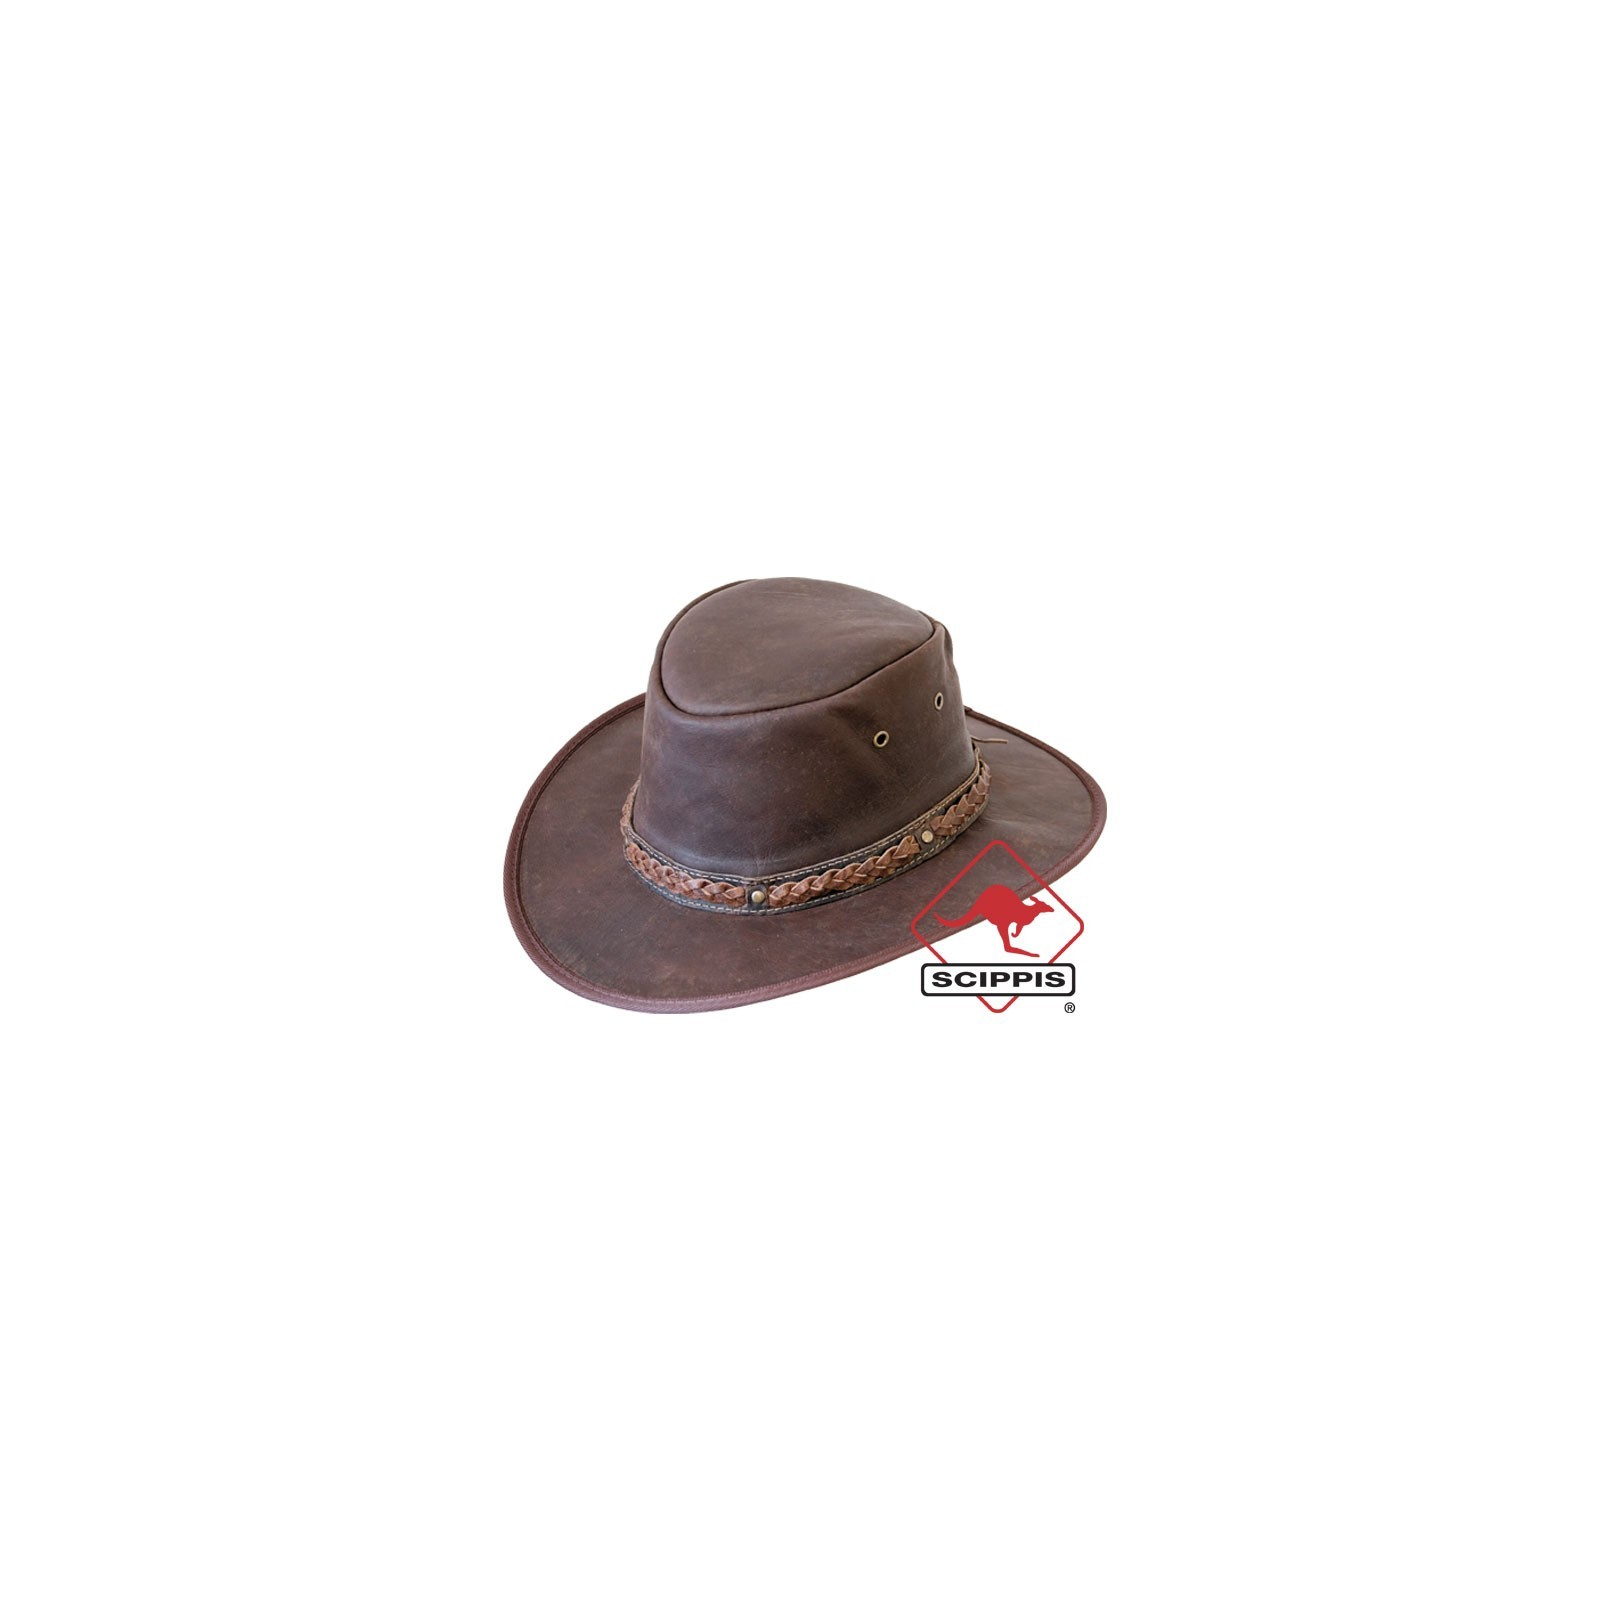 Scippis Kangaroo Sundowner leather hat